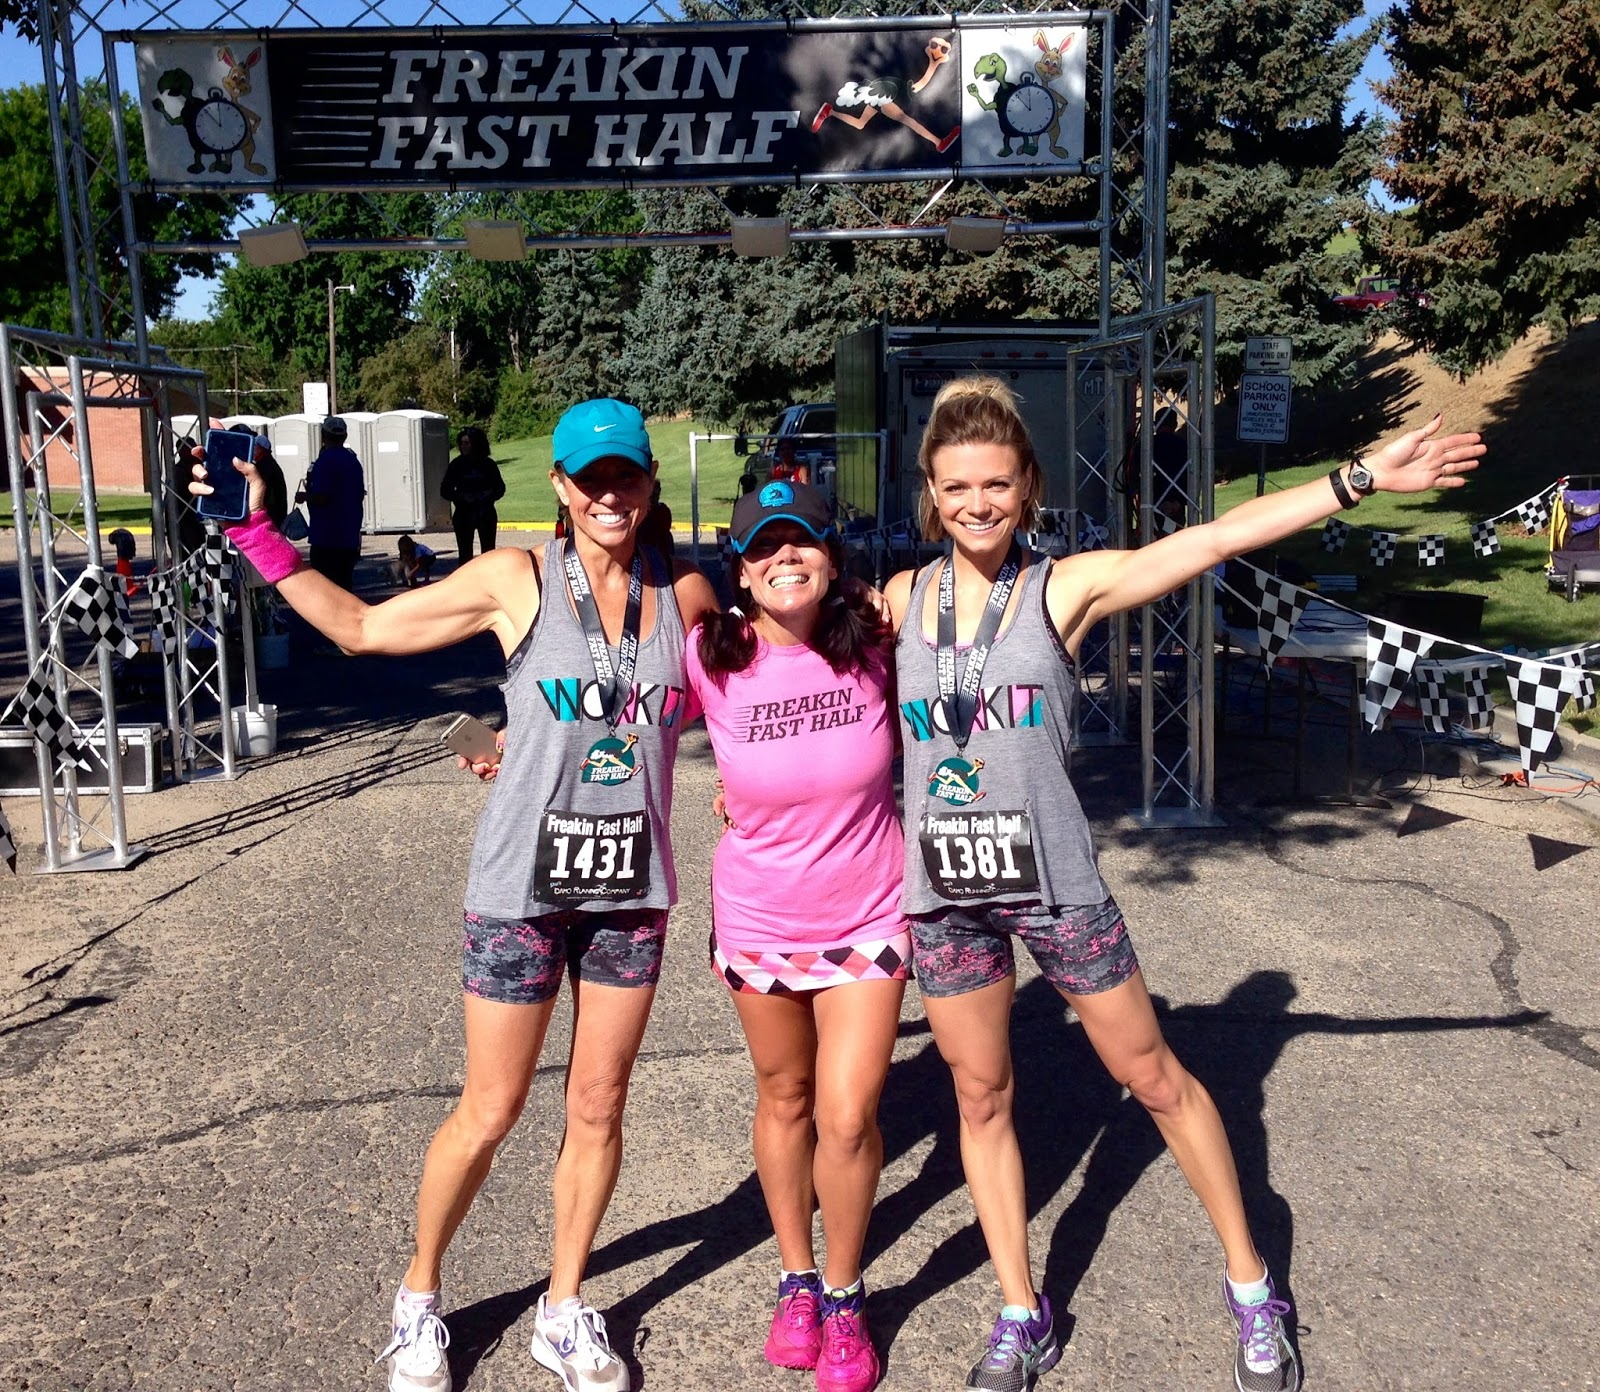 Freakin' Fast Half Marathon, Boise Runner, Downhill Half Marathon, Mom and Daughter Running Together, Final Kick Events